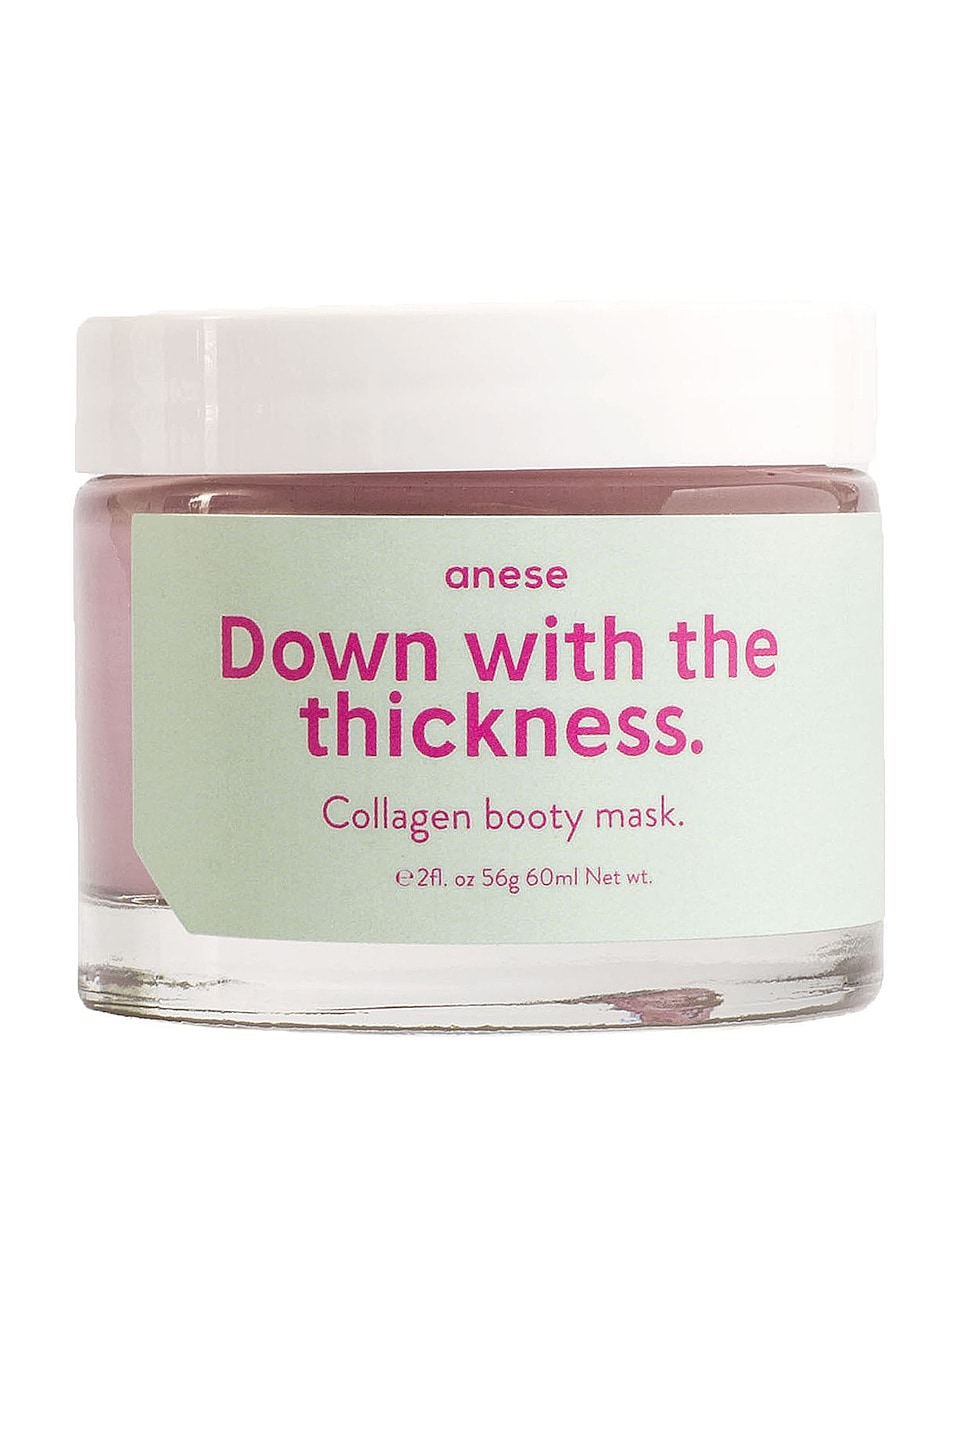 anese Down with the Thickness Collagen Booty Mask